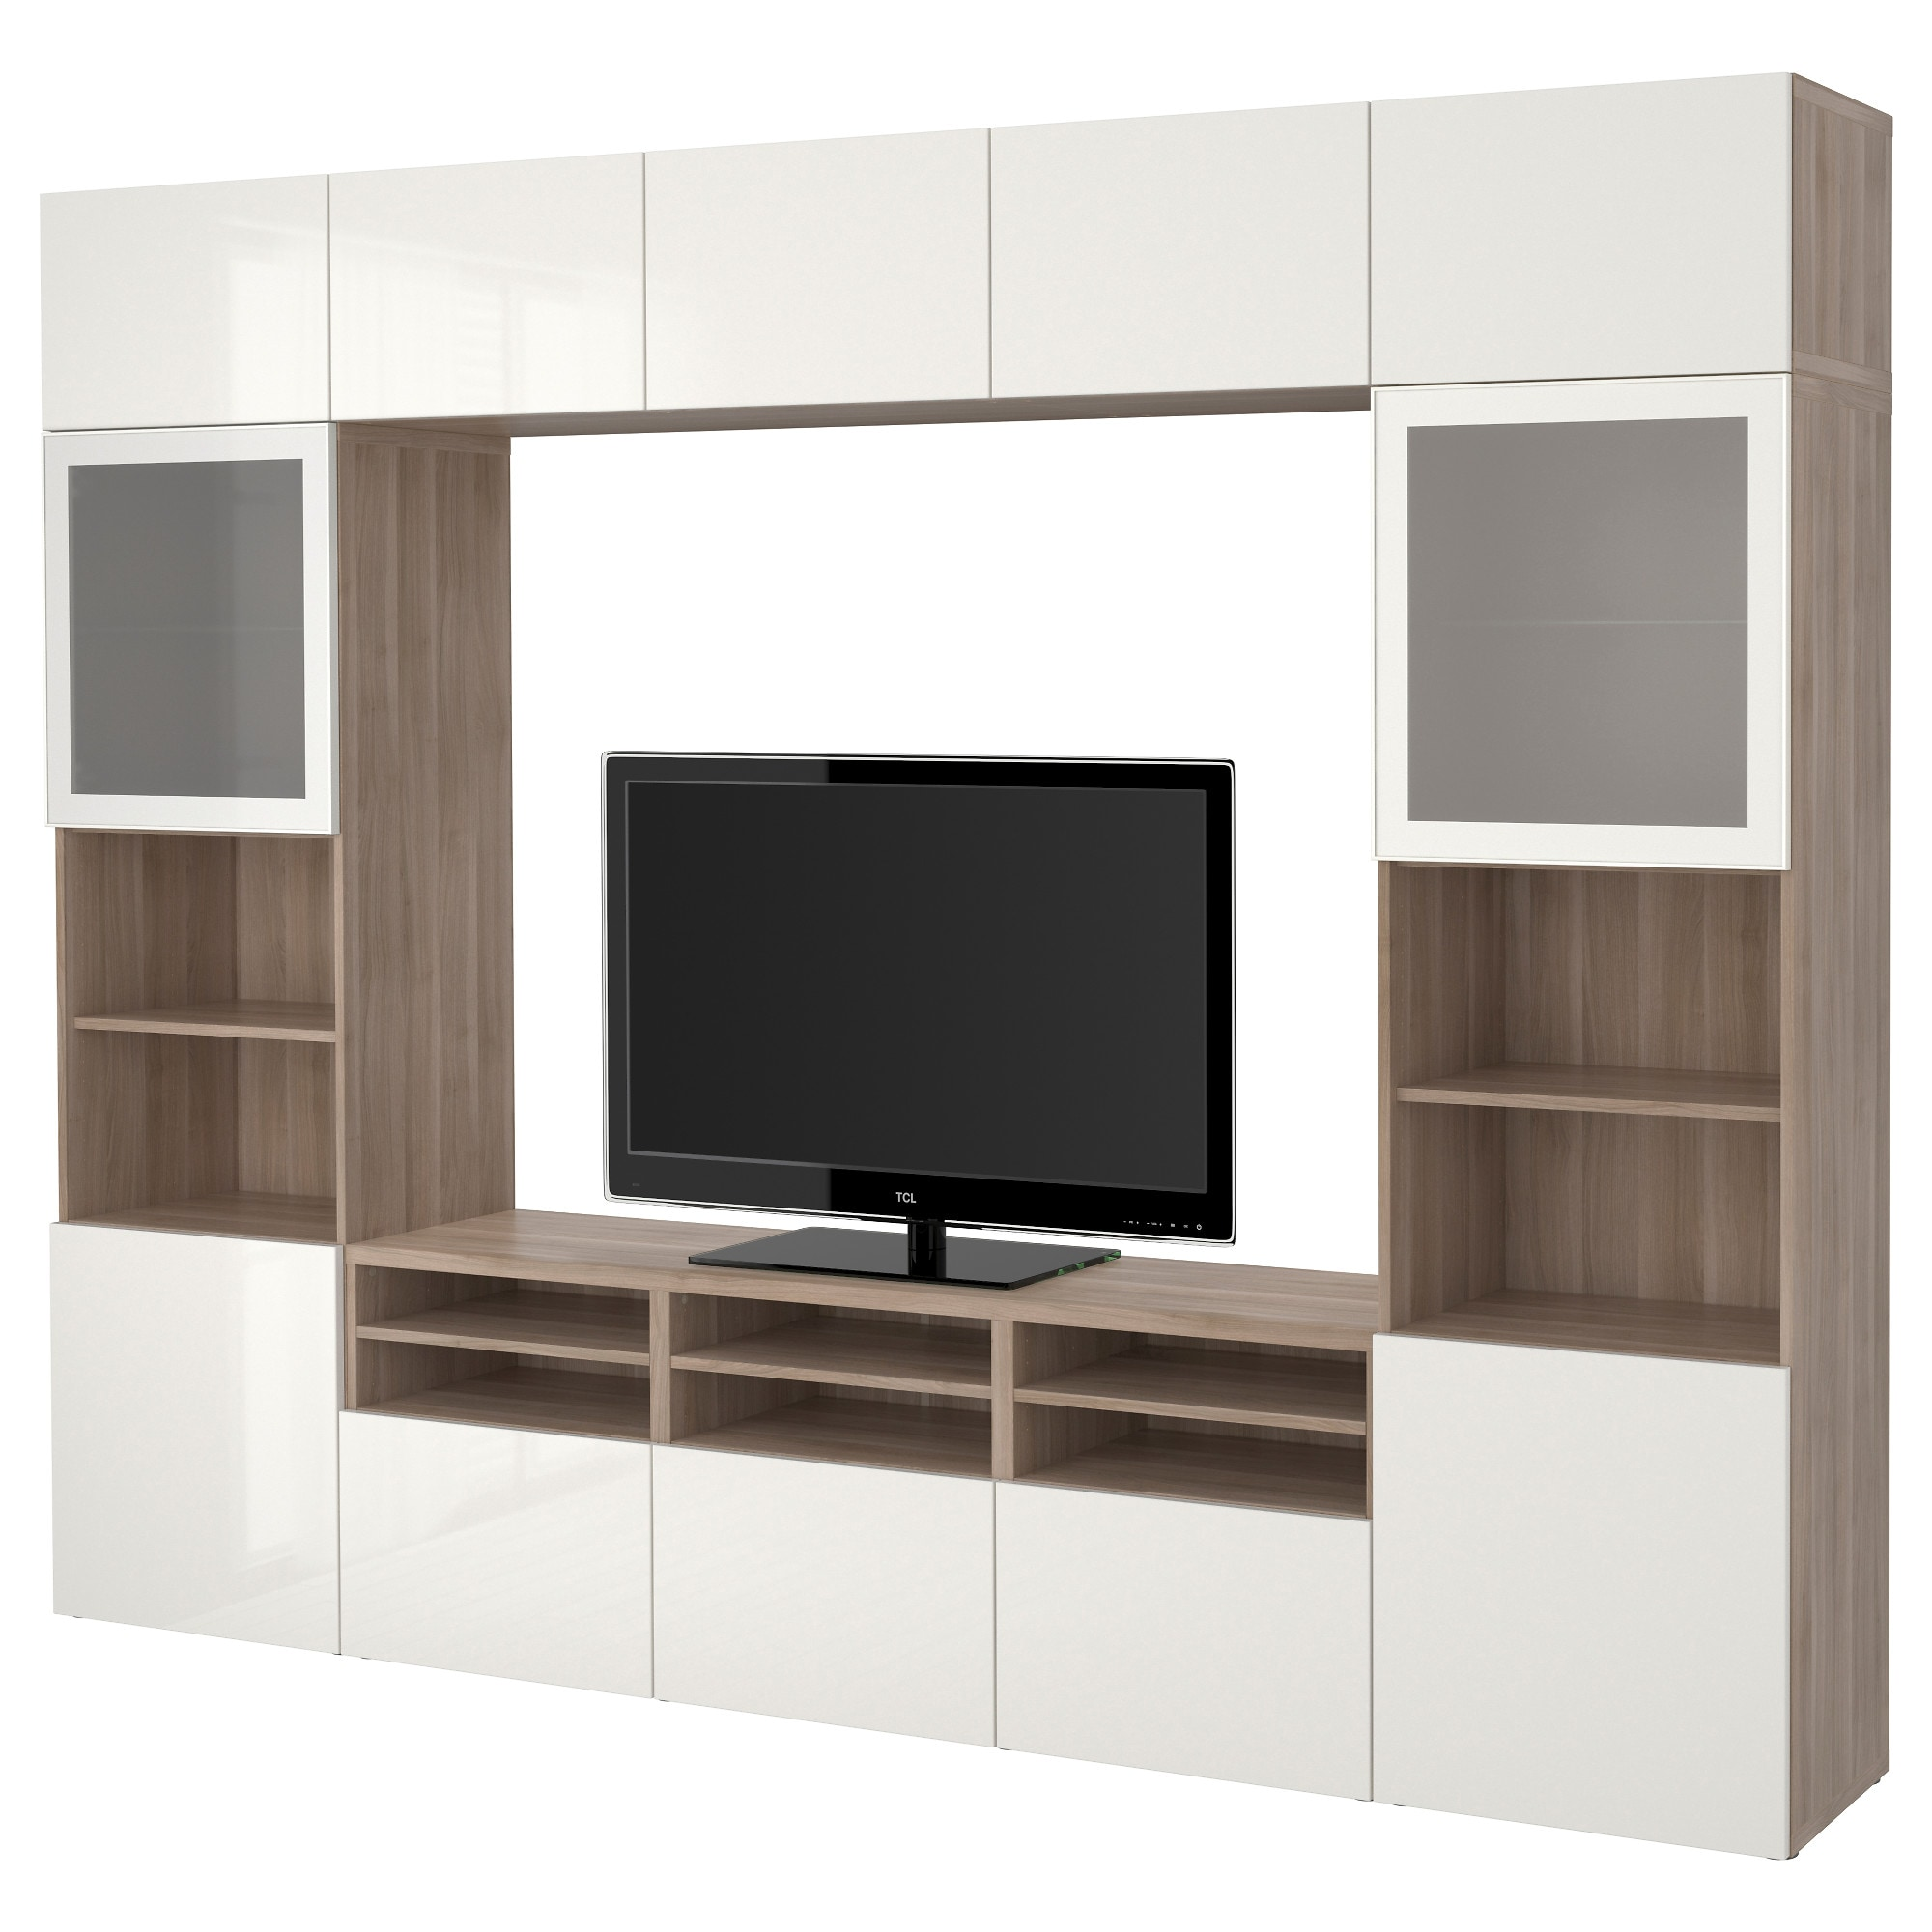 Related keywords suggestions for ikea media center for Tv media storage cabinet